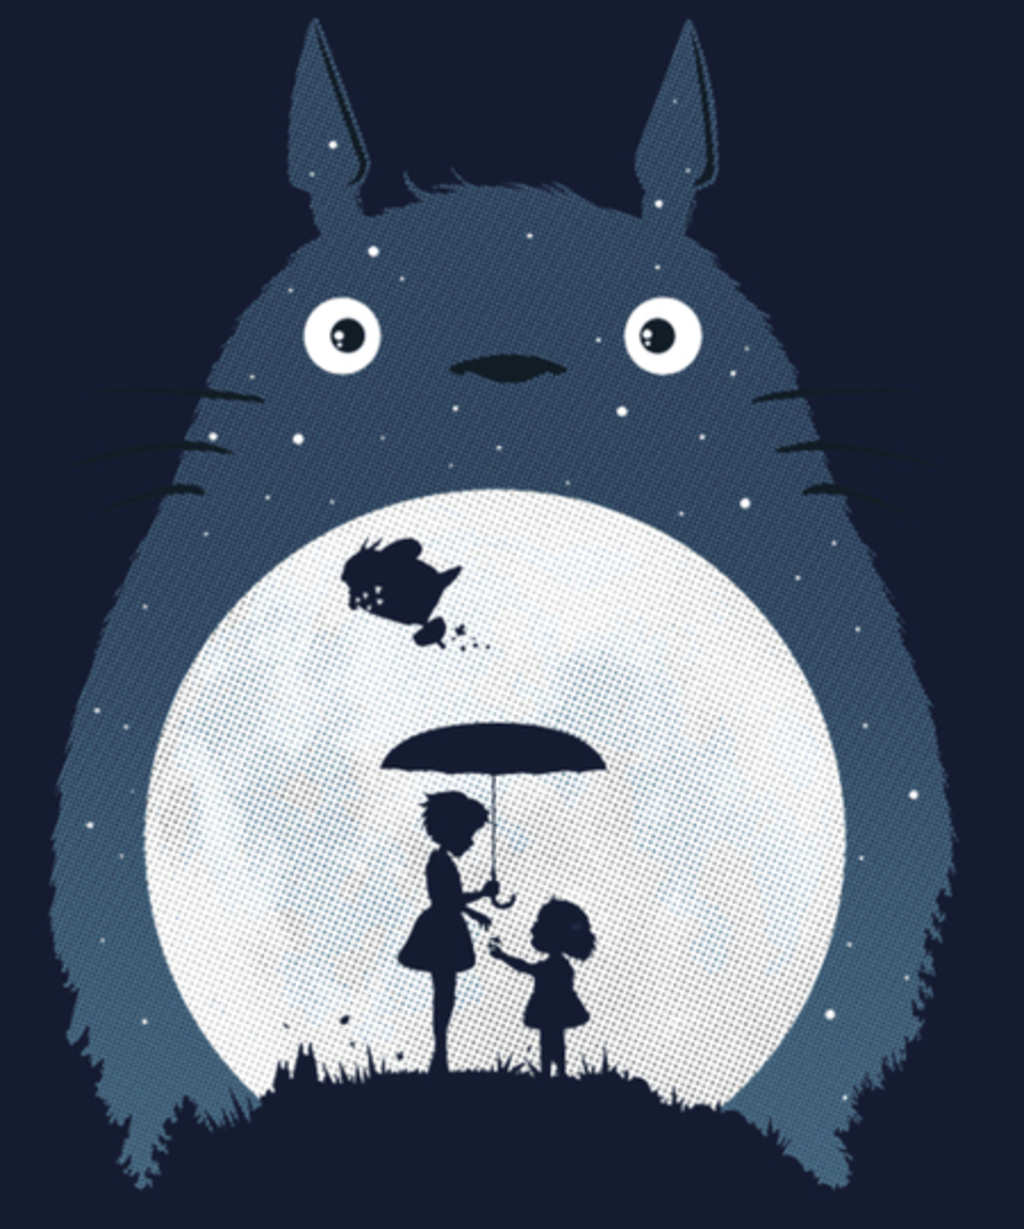 Qwertee: Moonlight Flight